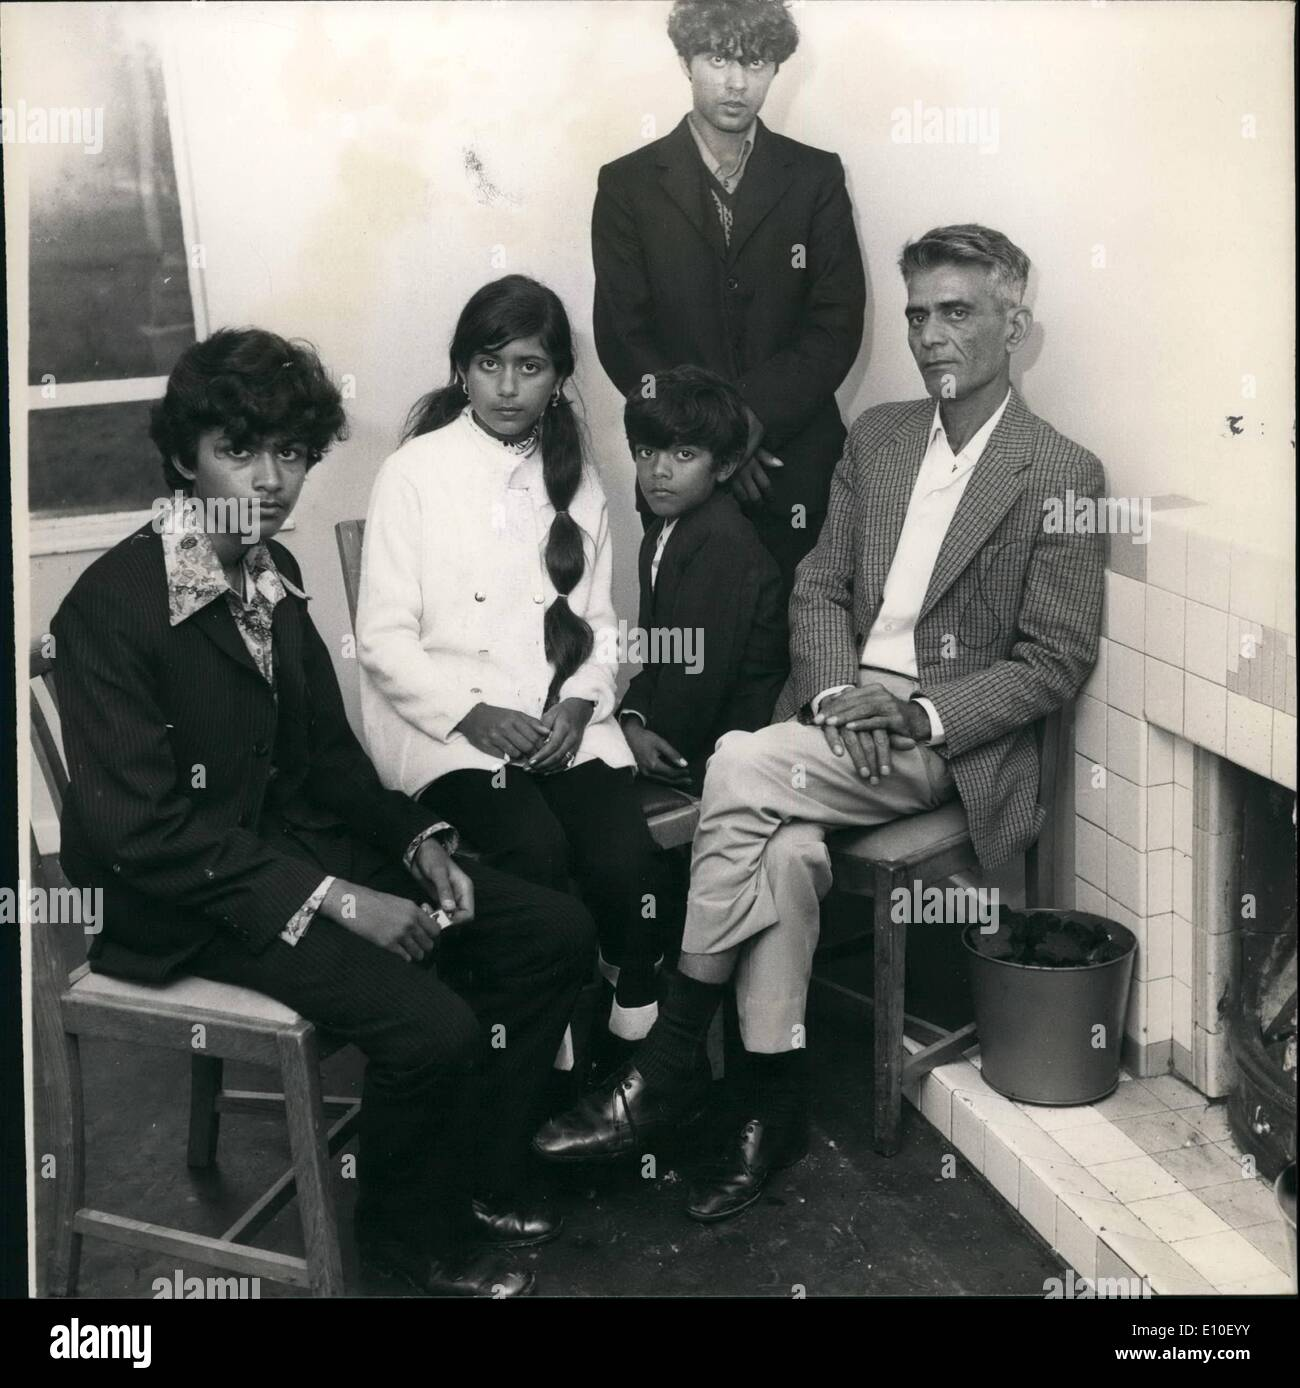 Sep. 09, 1972 - Ugandan Asians ''With nowhere to go'' settle in at RAF Stradishall air - base in Suffolk: The first family to be allocated housing at Stradishall, Suffolk, today, are pictured here around the fire in their new home. Mr. X - he reused to give his name for fear of possible reprisals against other members of his family still in Uganda told how his daughter Jaskree had her necklace taken from her at gunpoint, and cash and rings too, by military police who handled them roughly on the bus from Kampala to Entebbe Airport. Mr X is an accountant - Stock Image